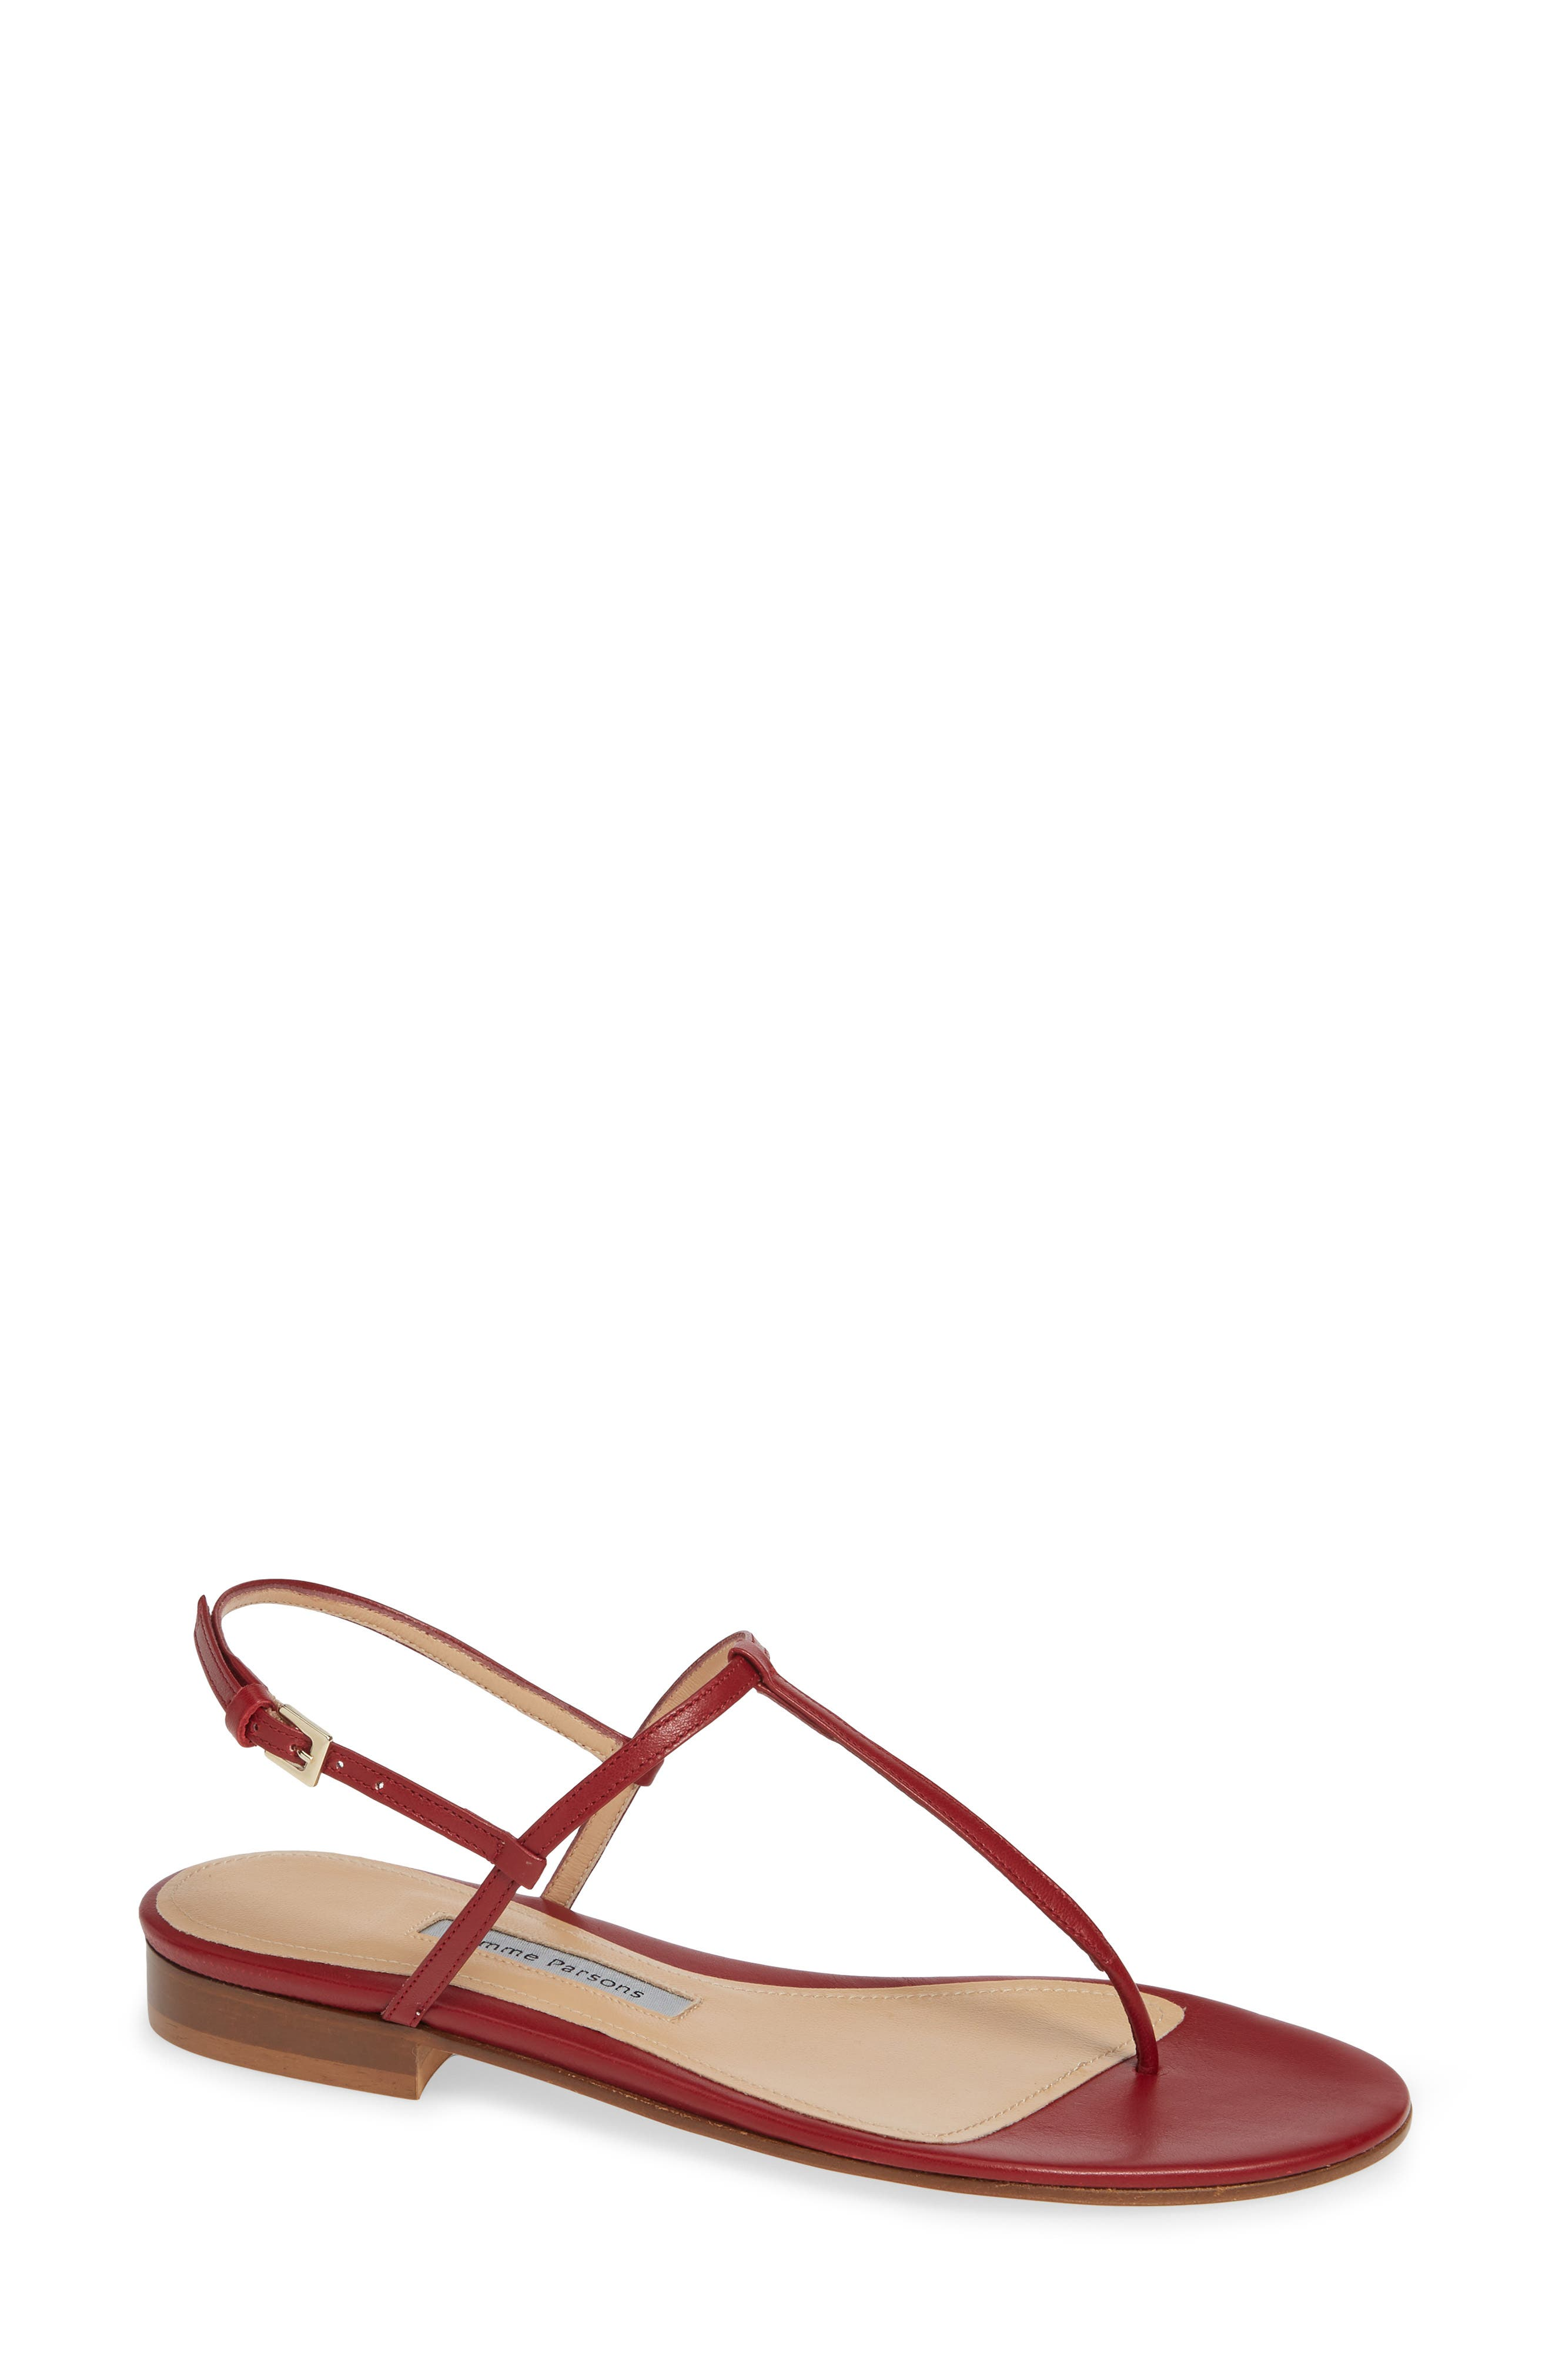 EMME PARSONS Cecilia Sandal in Red